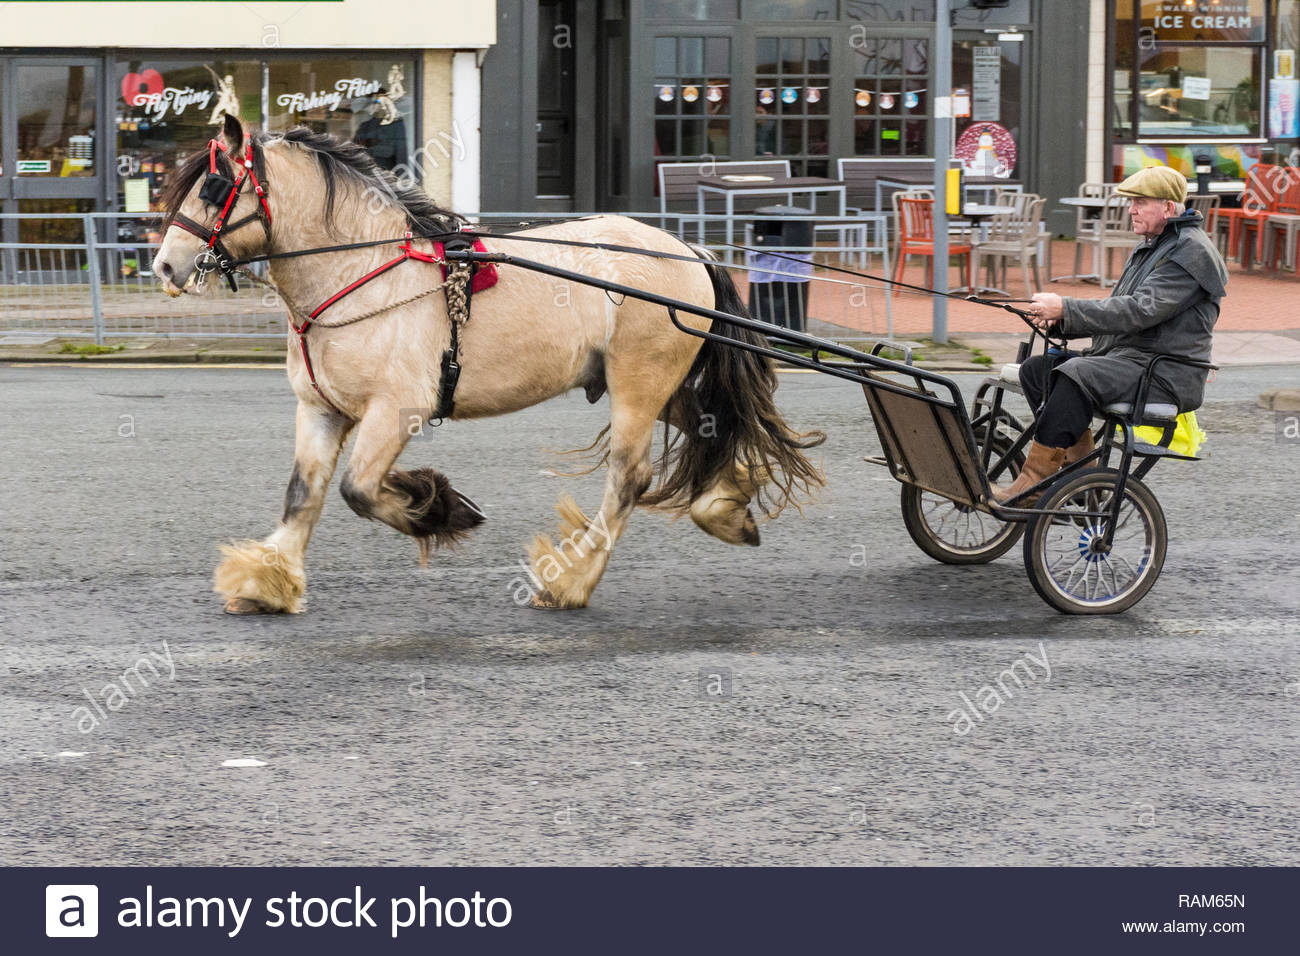 A horse pulling a sulky and its rider on Marine Road, Morecambe, Lancashire, England, UK - Stock Image